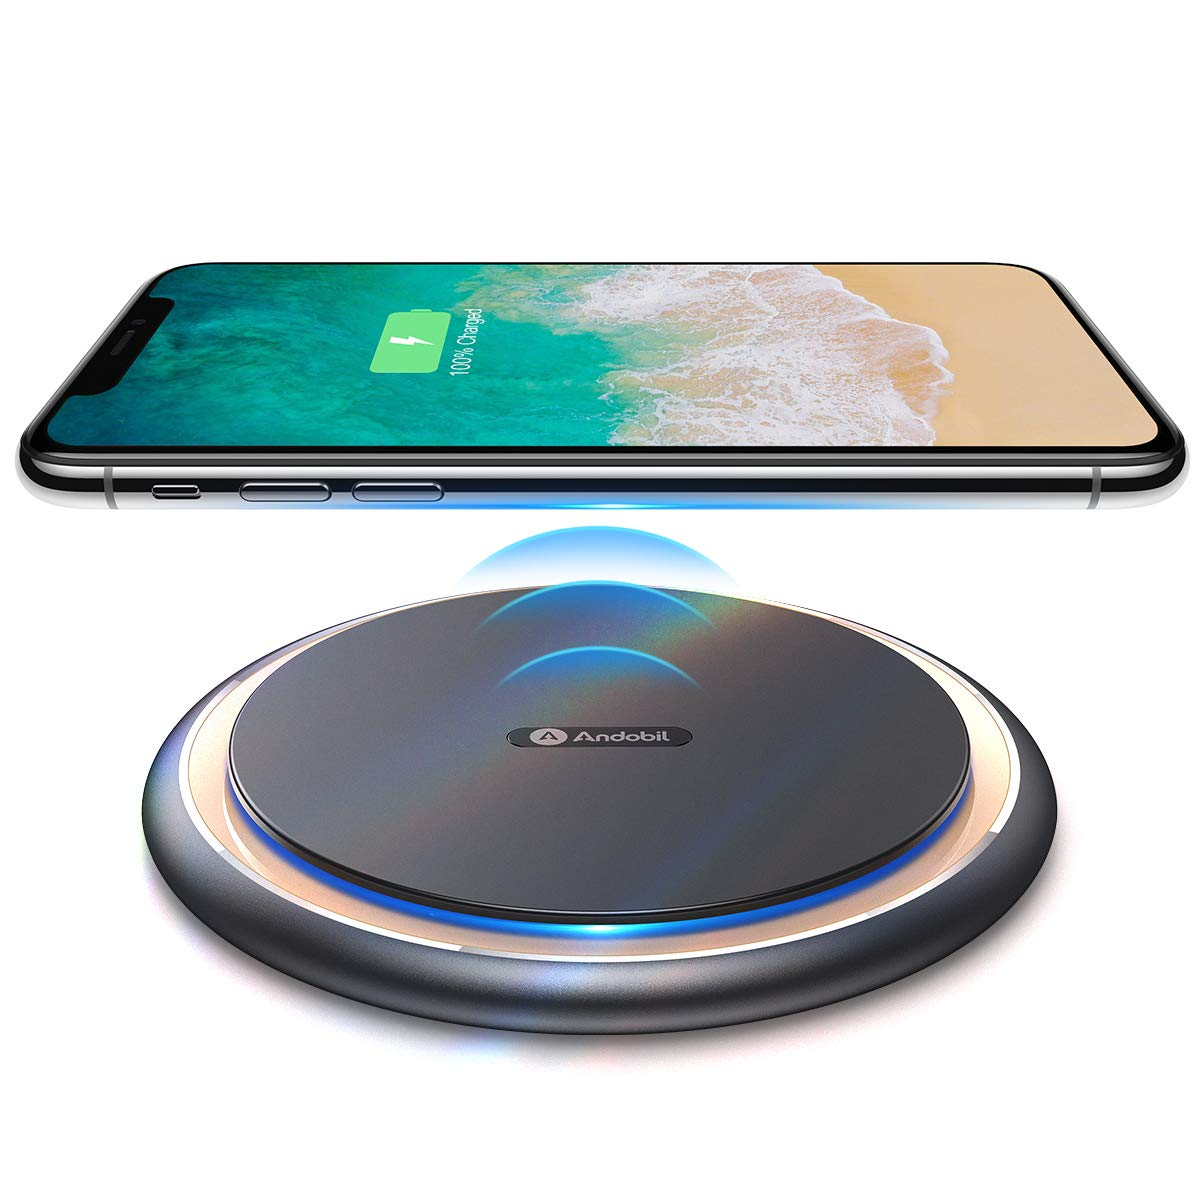 Andobil Boost 15W Fast Wireless Charger, USB-C Qi Certified Alloy Cooling Charging Pad Station 10W 7.5W Compatible iPhone 11/X/Xs Max/Xs/Xr/8, Samsung Galaxy S10/S10+/S9/S9+/S8/S7/Note 9, LG V40 G7 by Andobil Wireless Charger